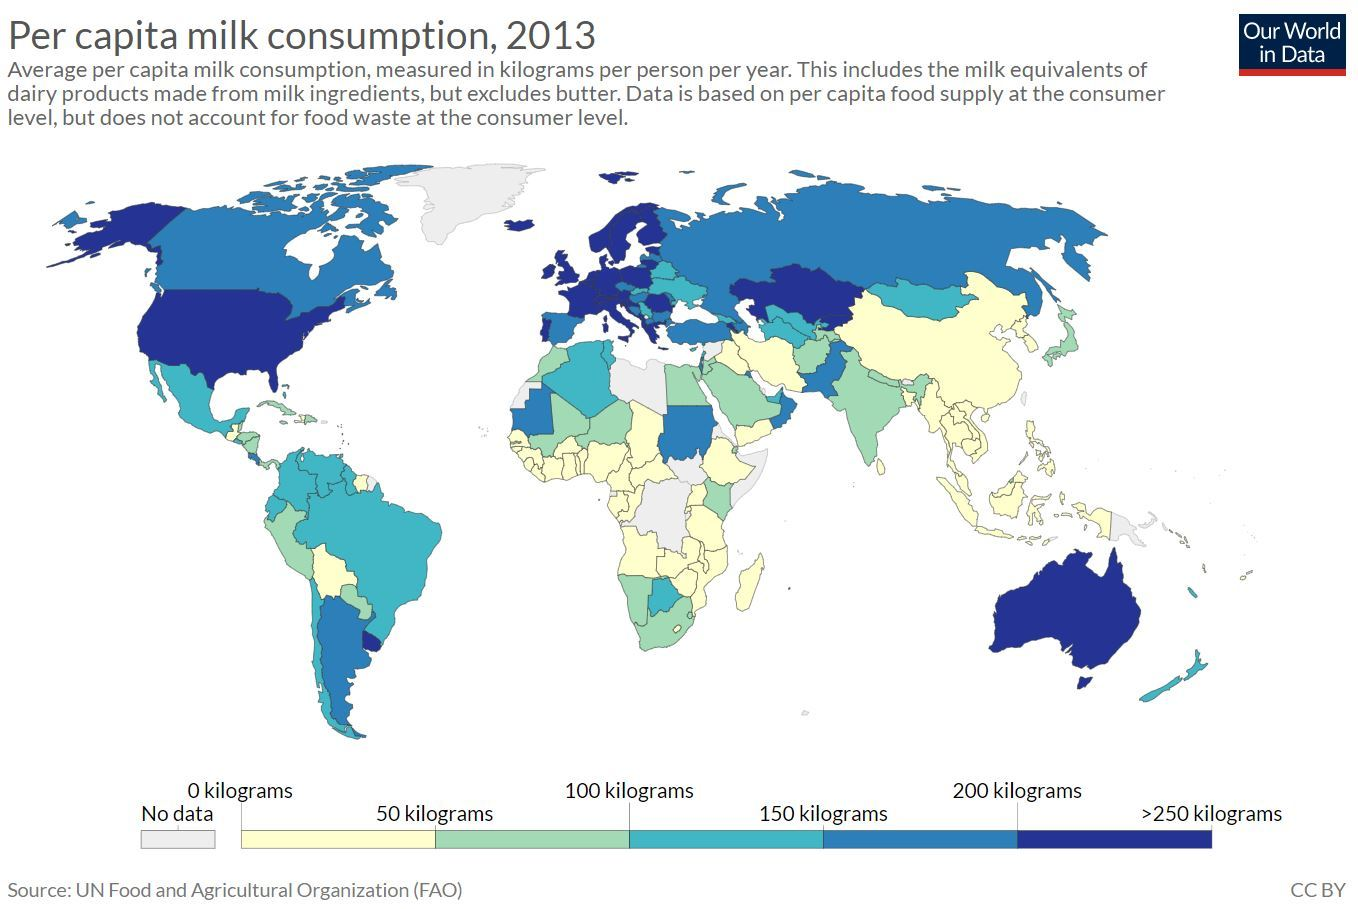 Map of the world showing consumption levels of milk. Highest consumption levels are found in USA, Europe and Australia. Lowest levels are found in equatorial Africa, China and the Far East.